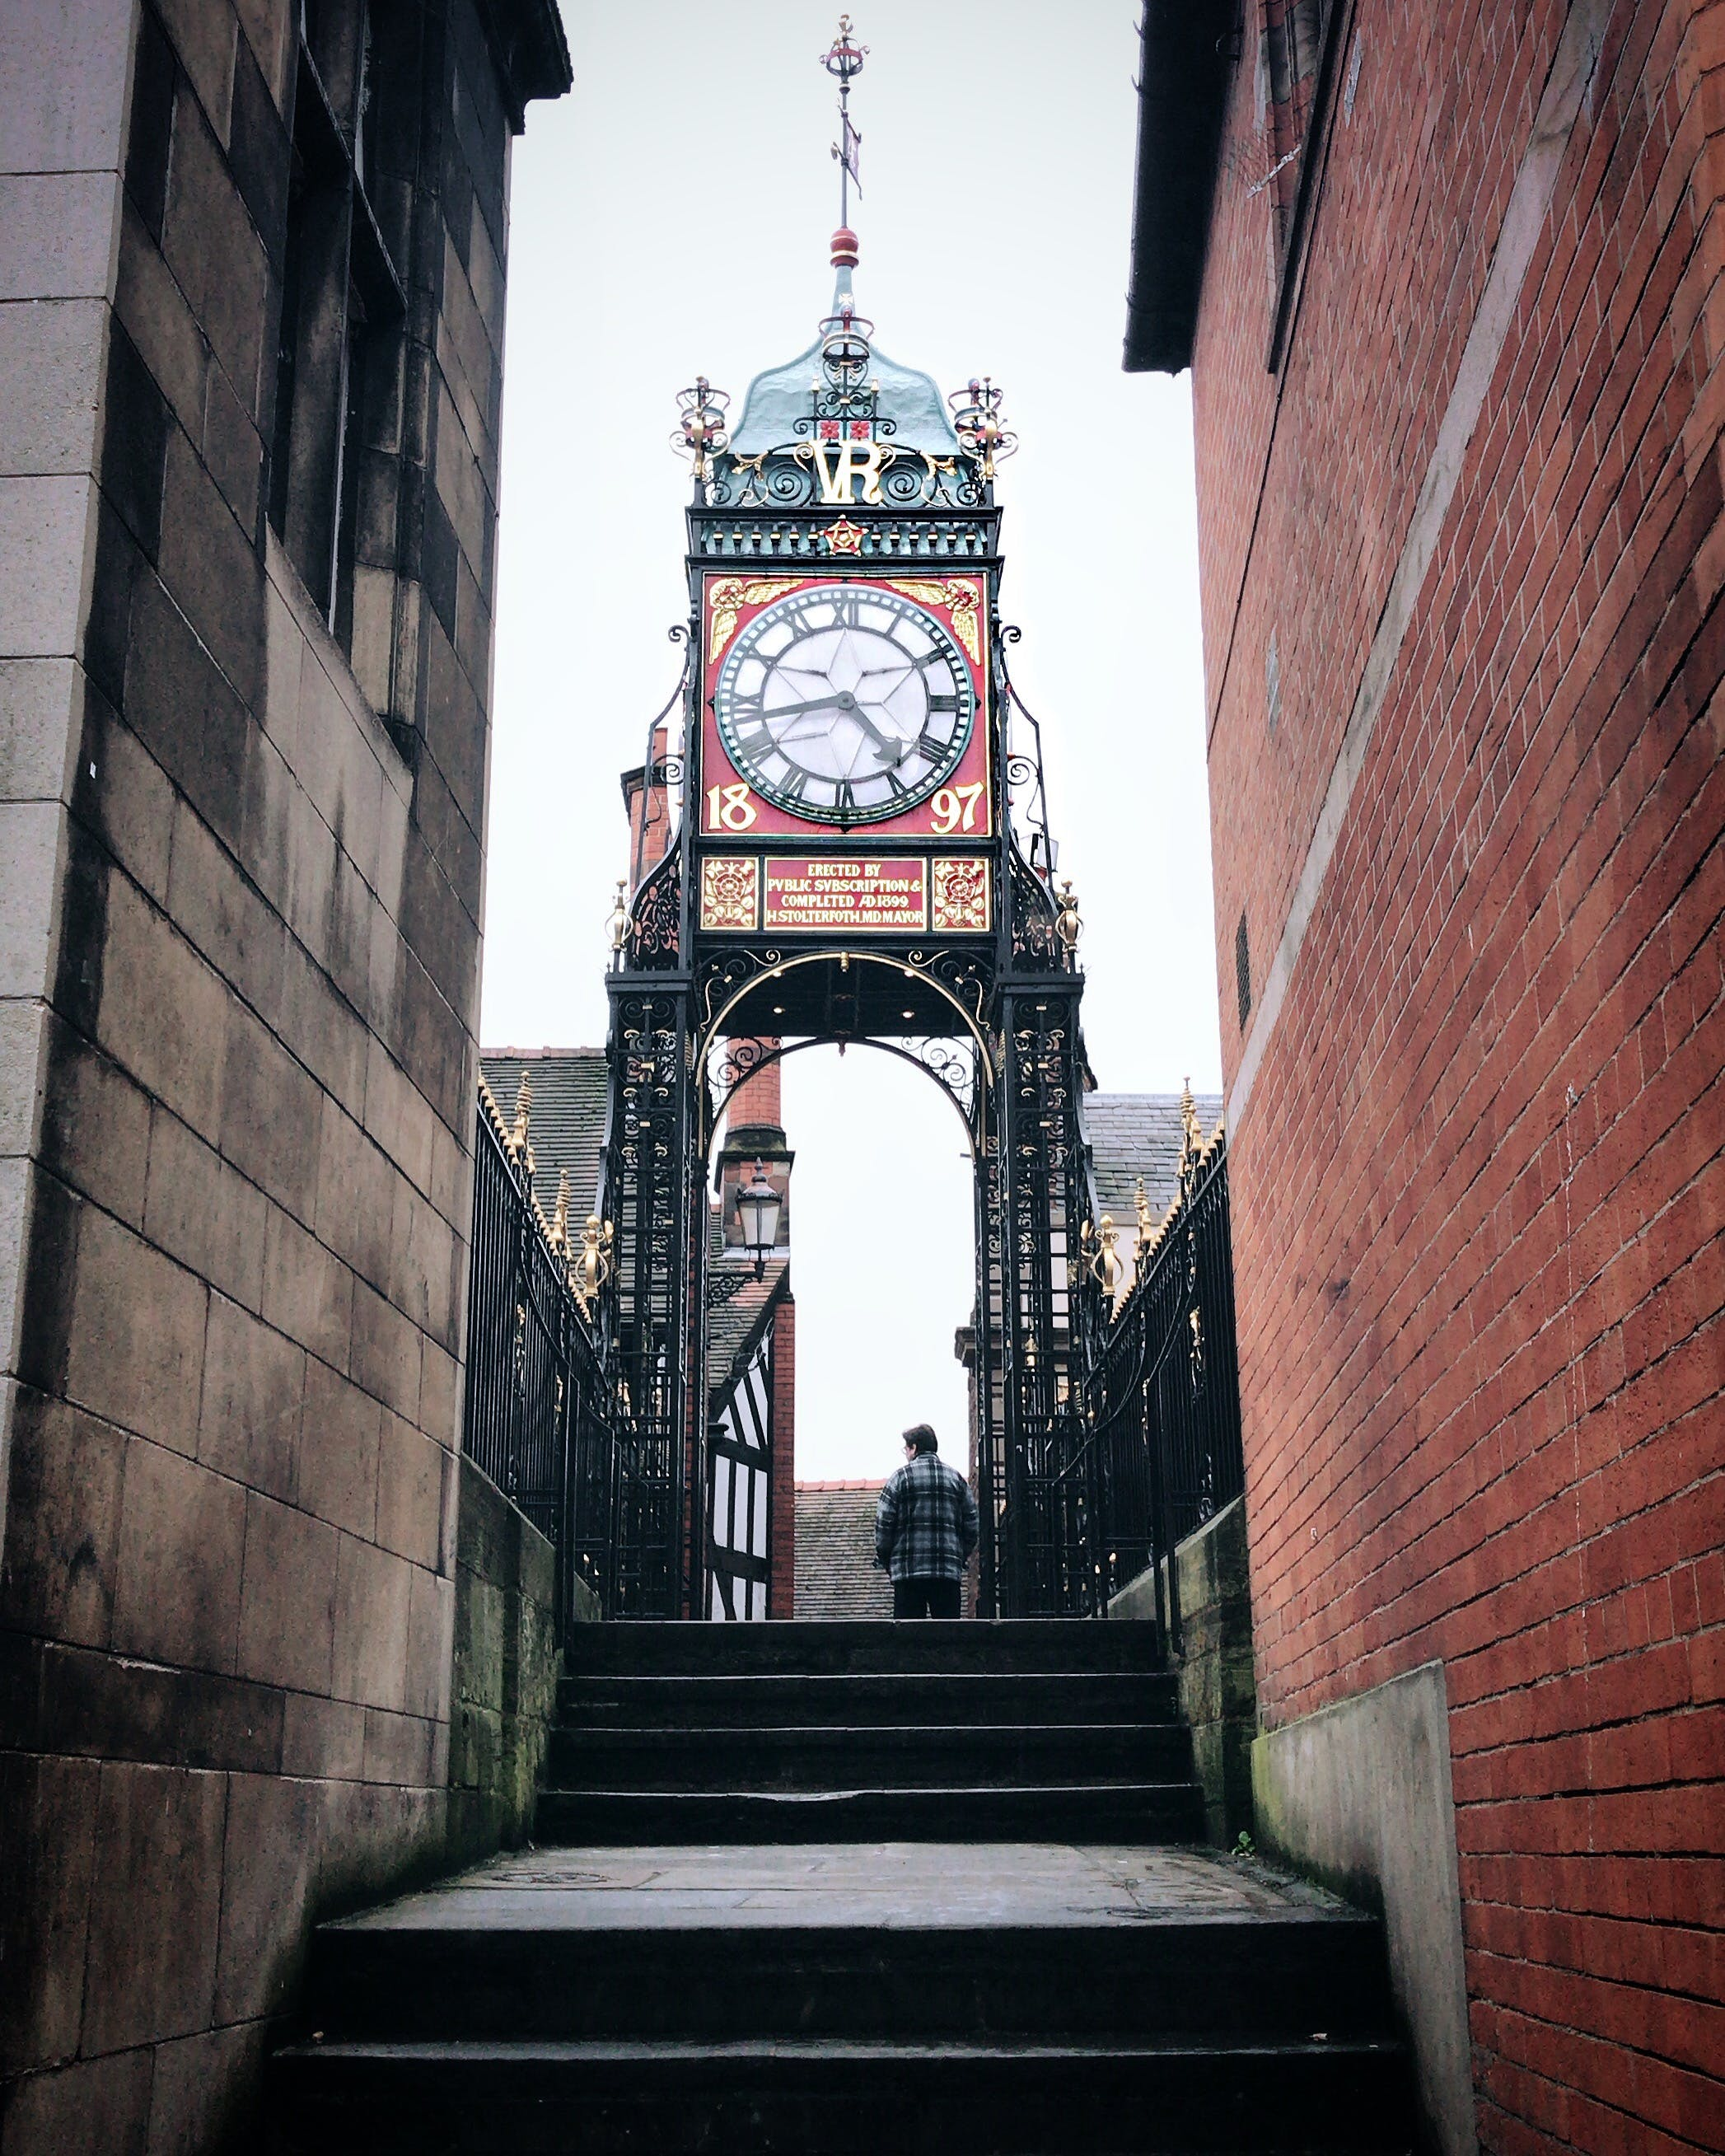 Free stock photo of architectural design, architectural detail, chester, clock tower